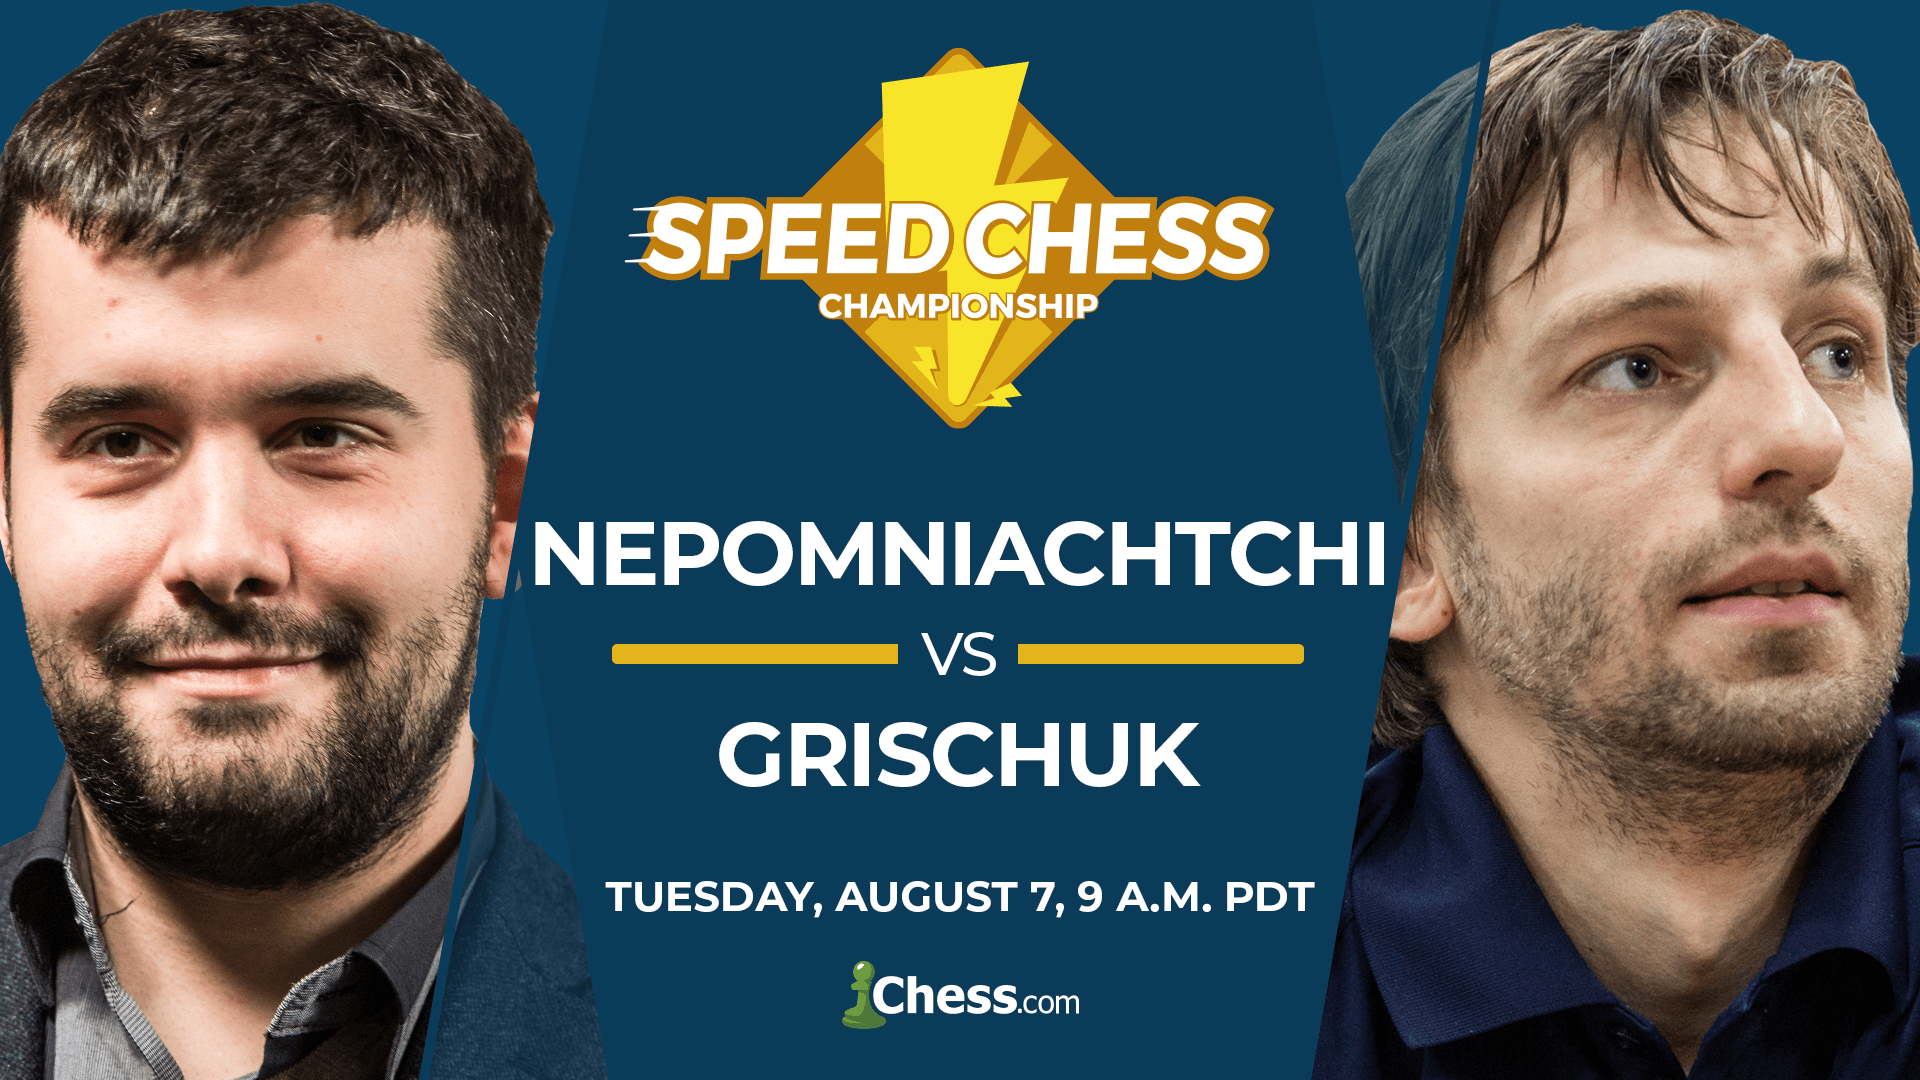 Nepomniachtchi vs Grischuk: Tuesday, August 7, 9 a.m. PDT